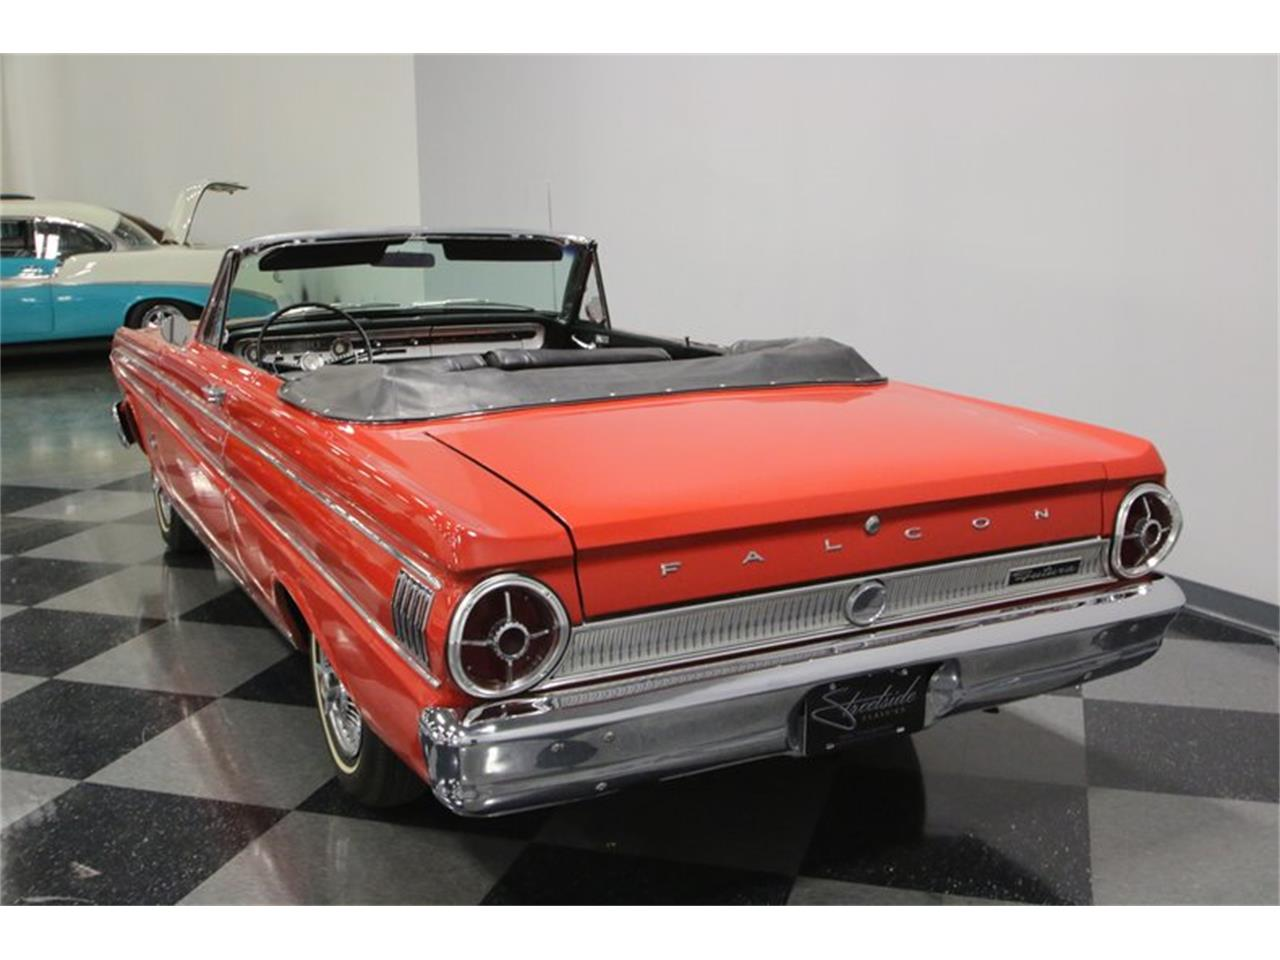 1964 Ford Falcon Futura for sale in Lavergne, TN – photo 10